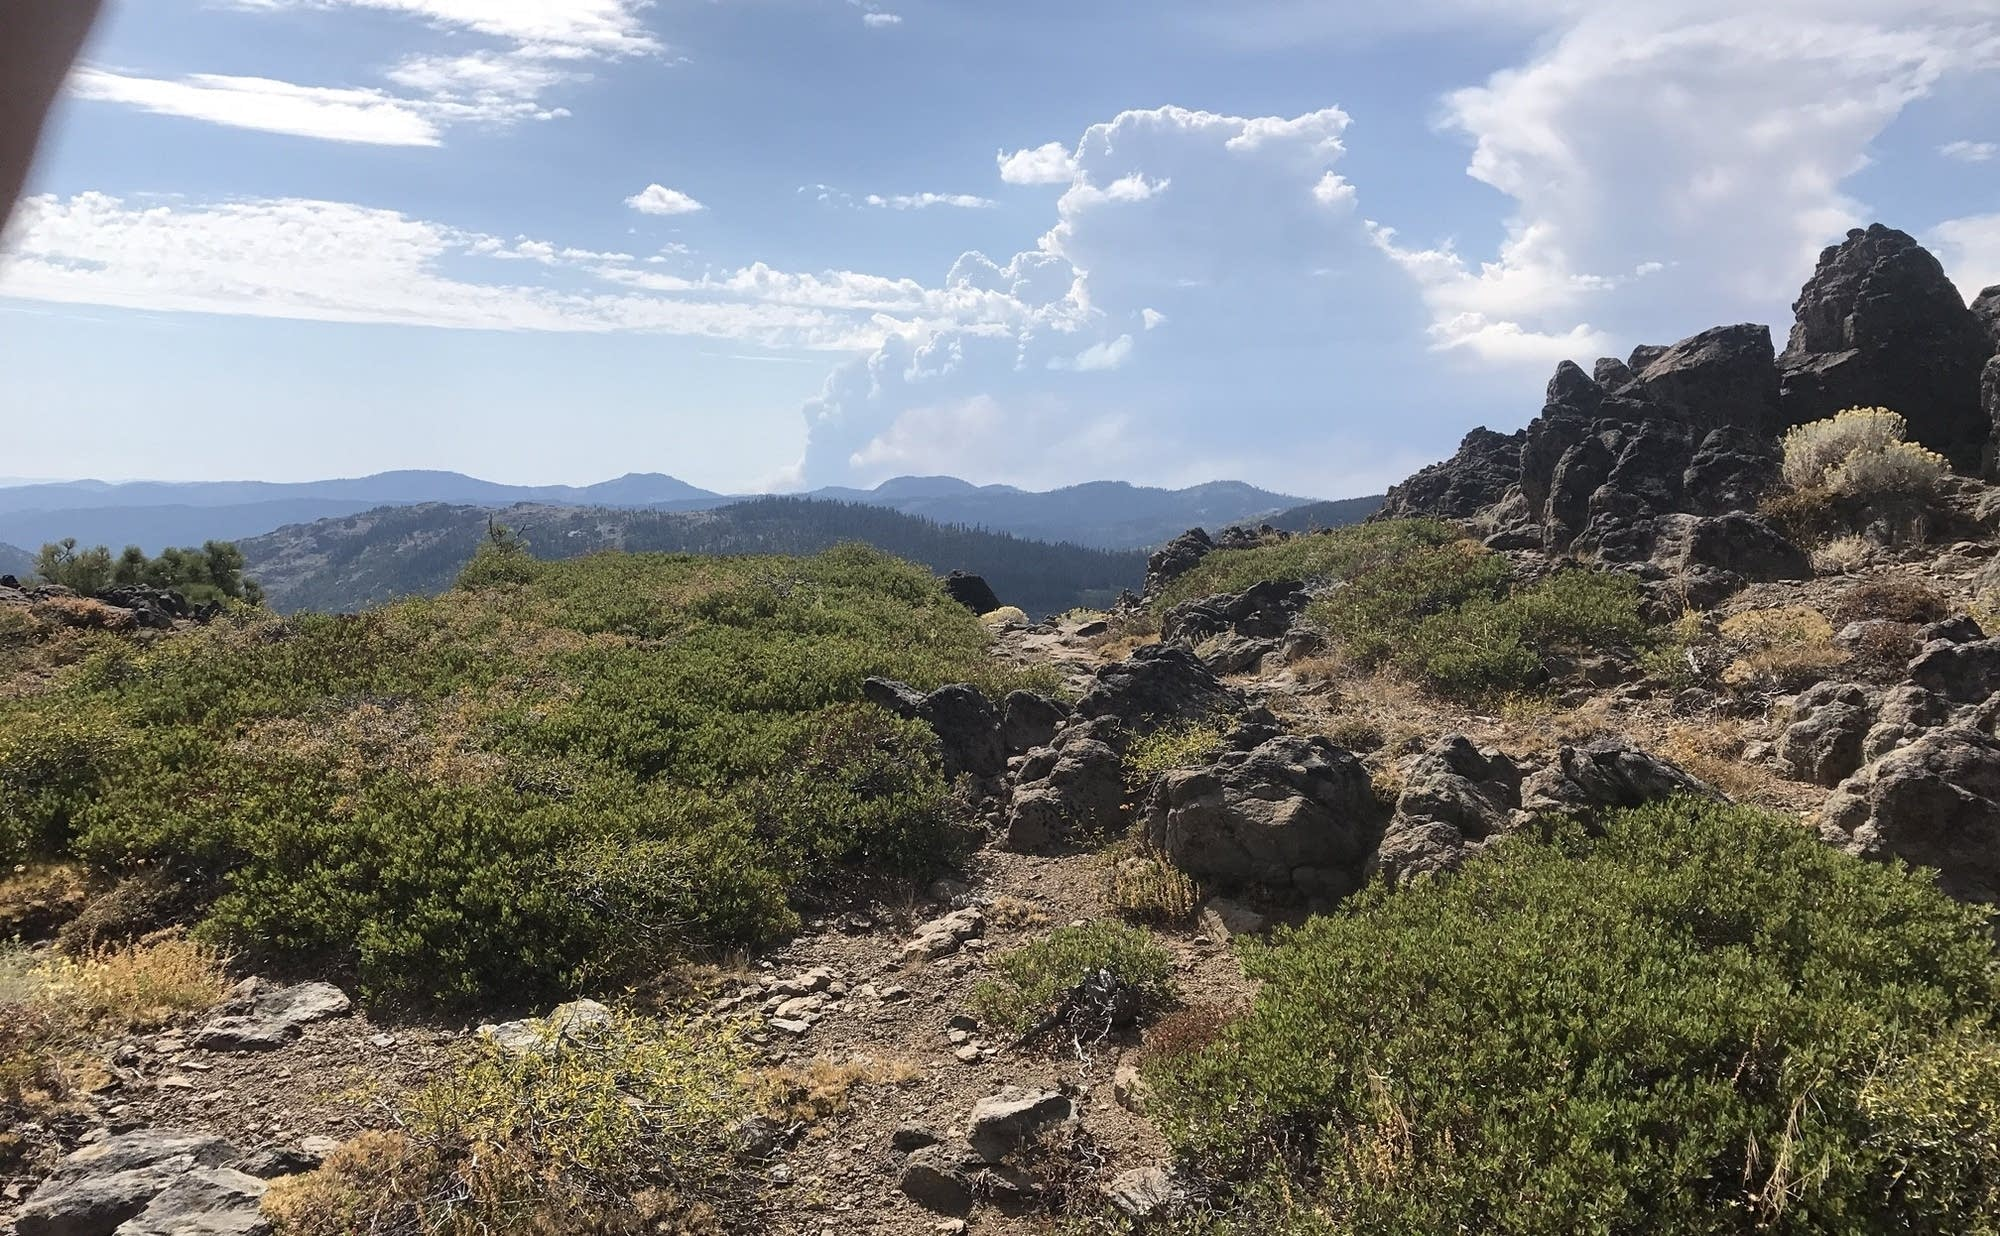 Forest fire visible on the Pacific Crest Trail